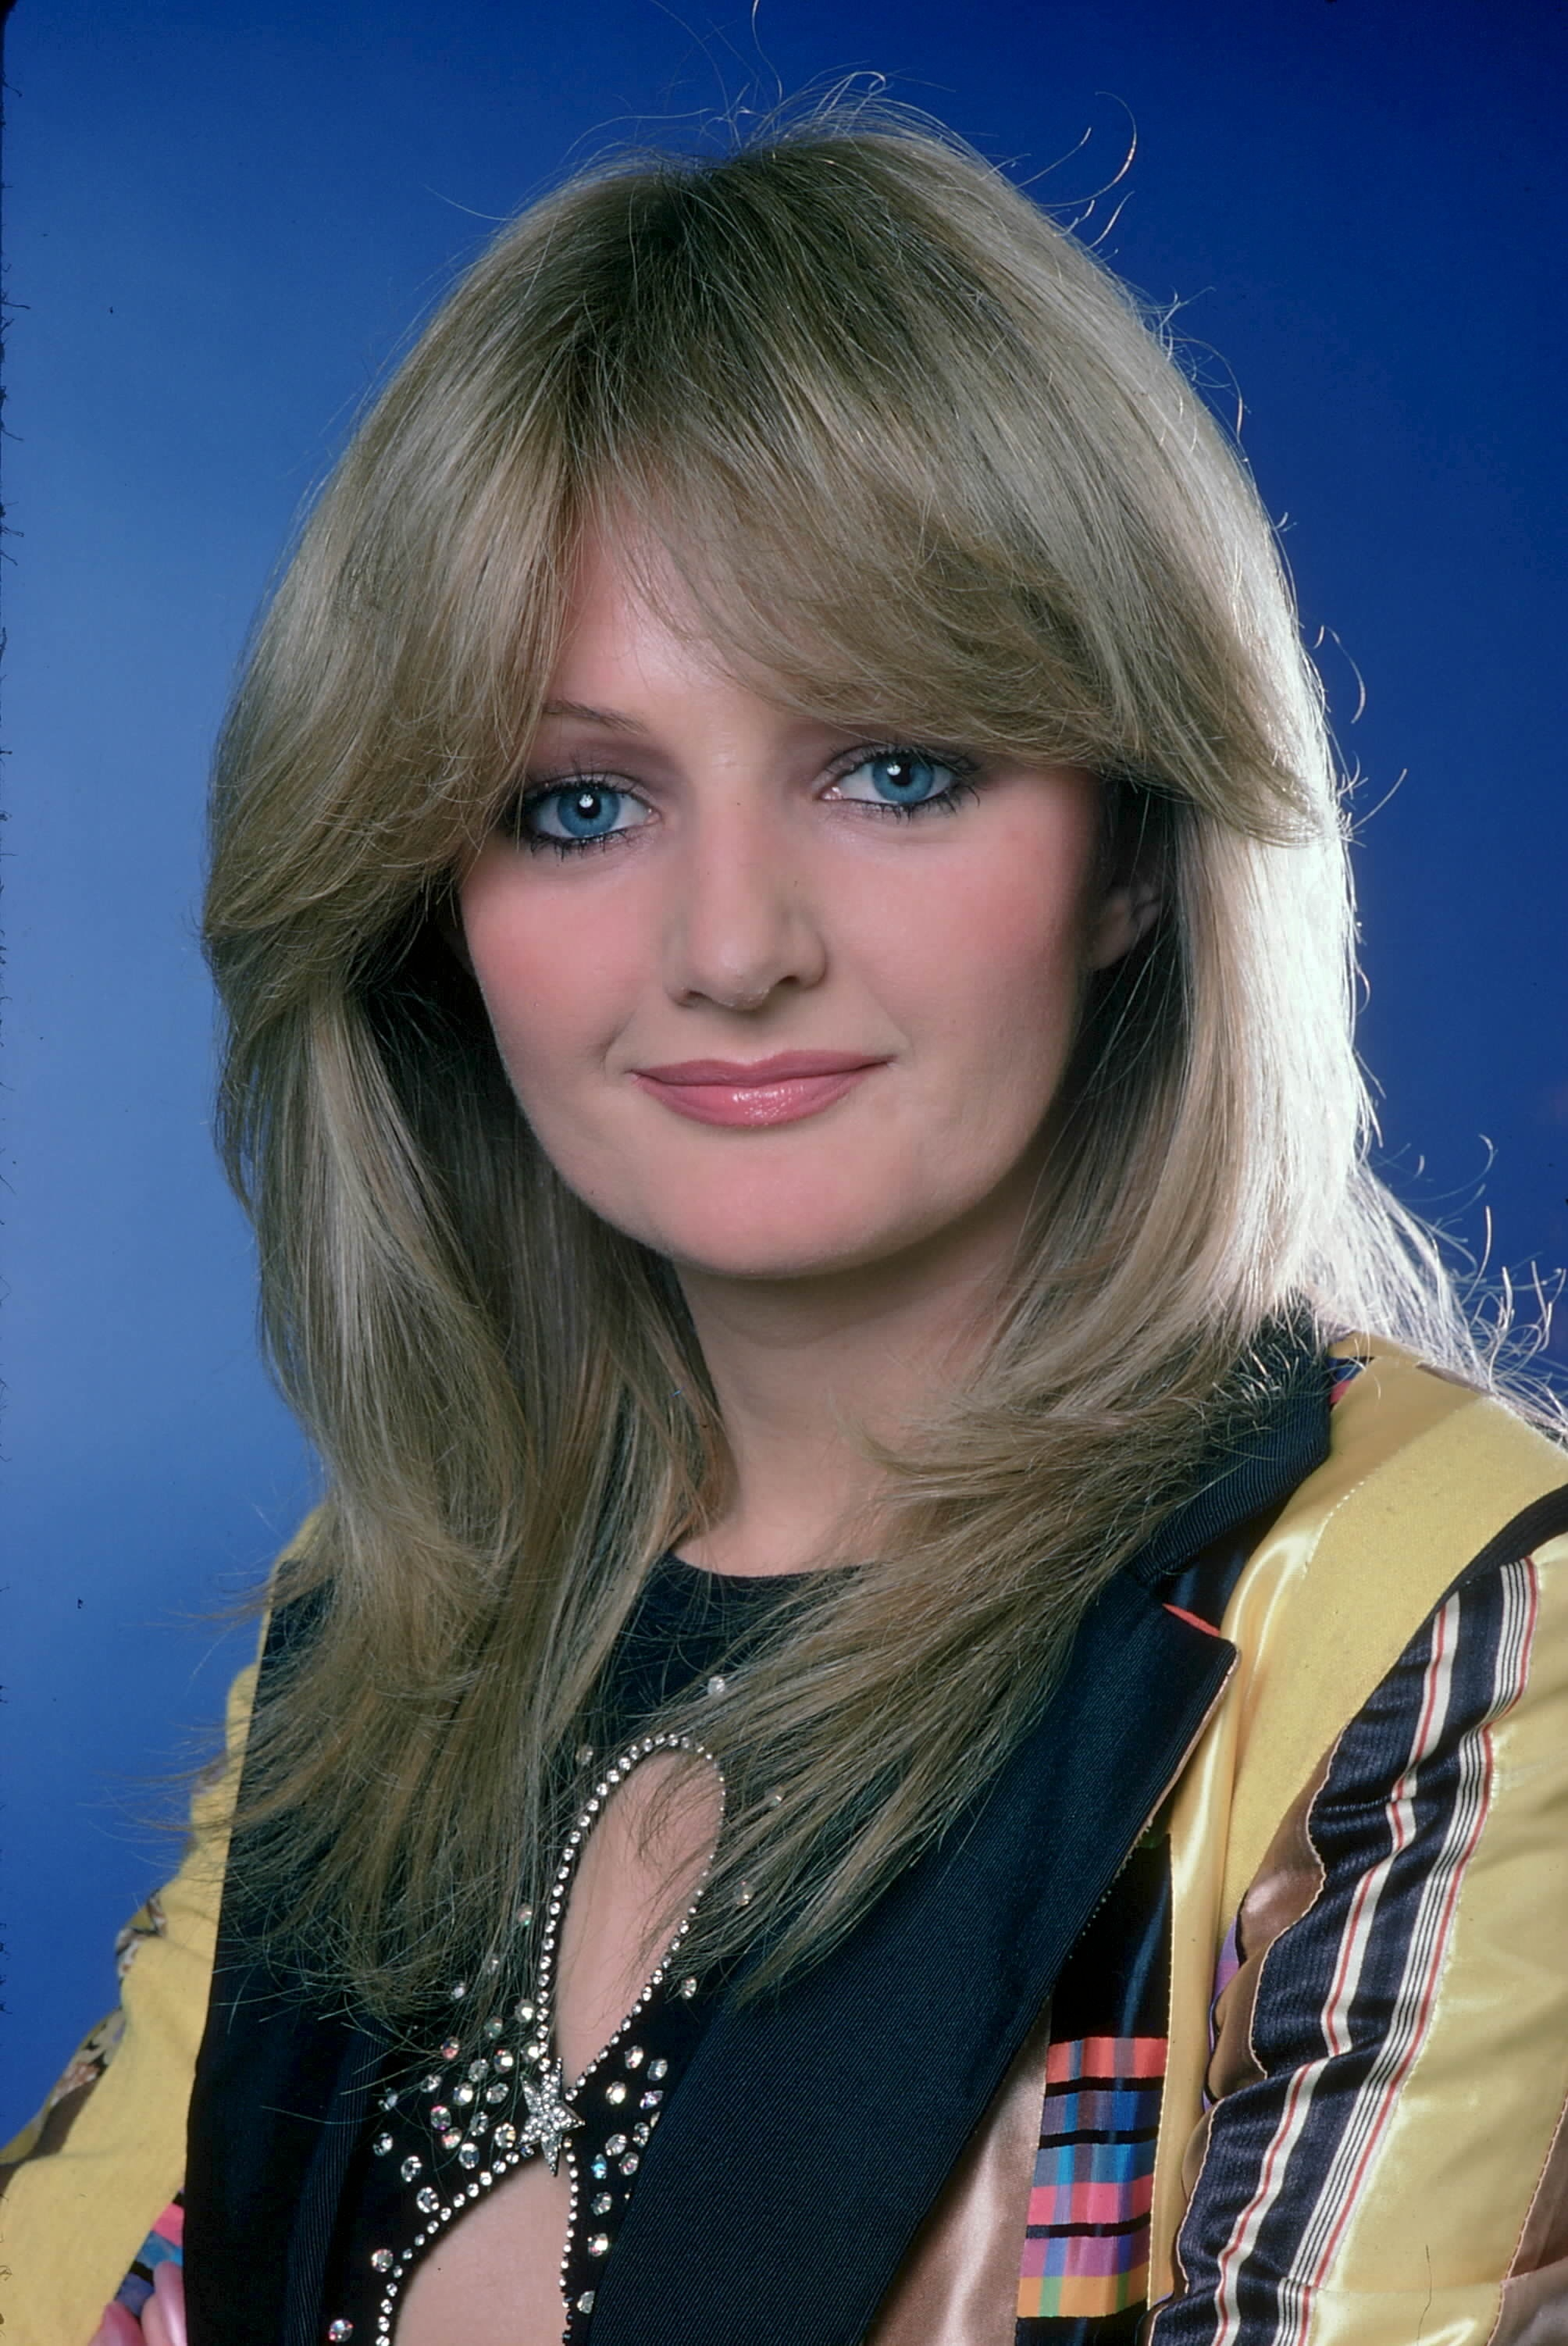 bonnie tyler 1979 bonnie tyler photo 34529793 fanpop